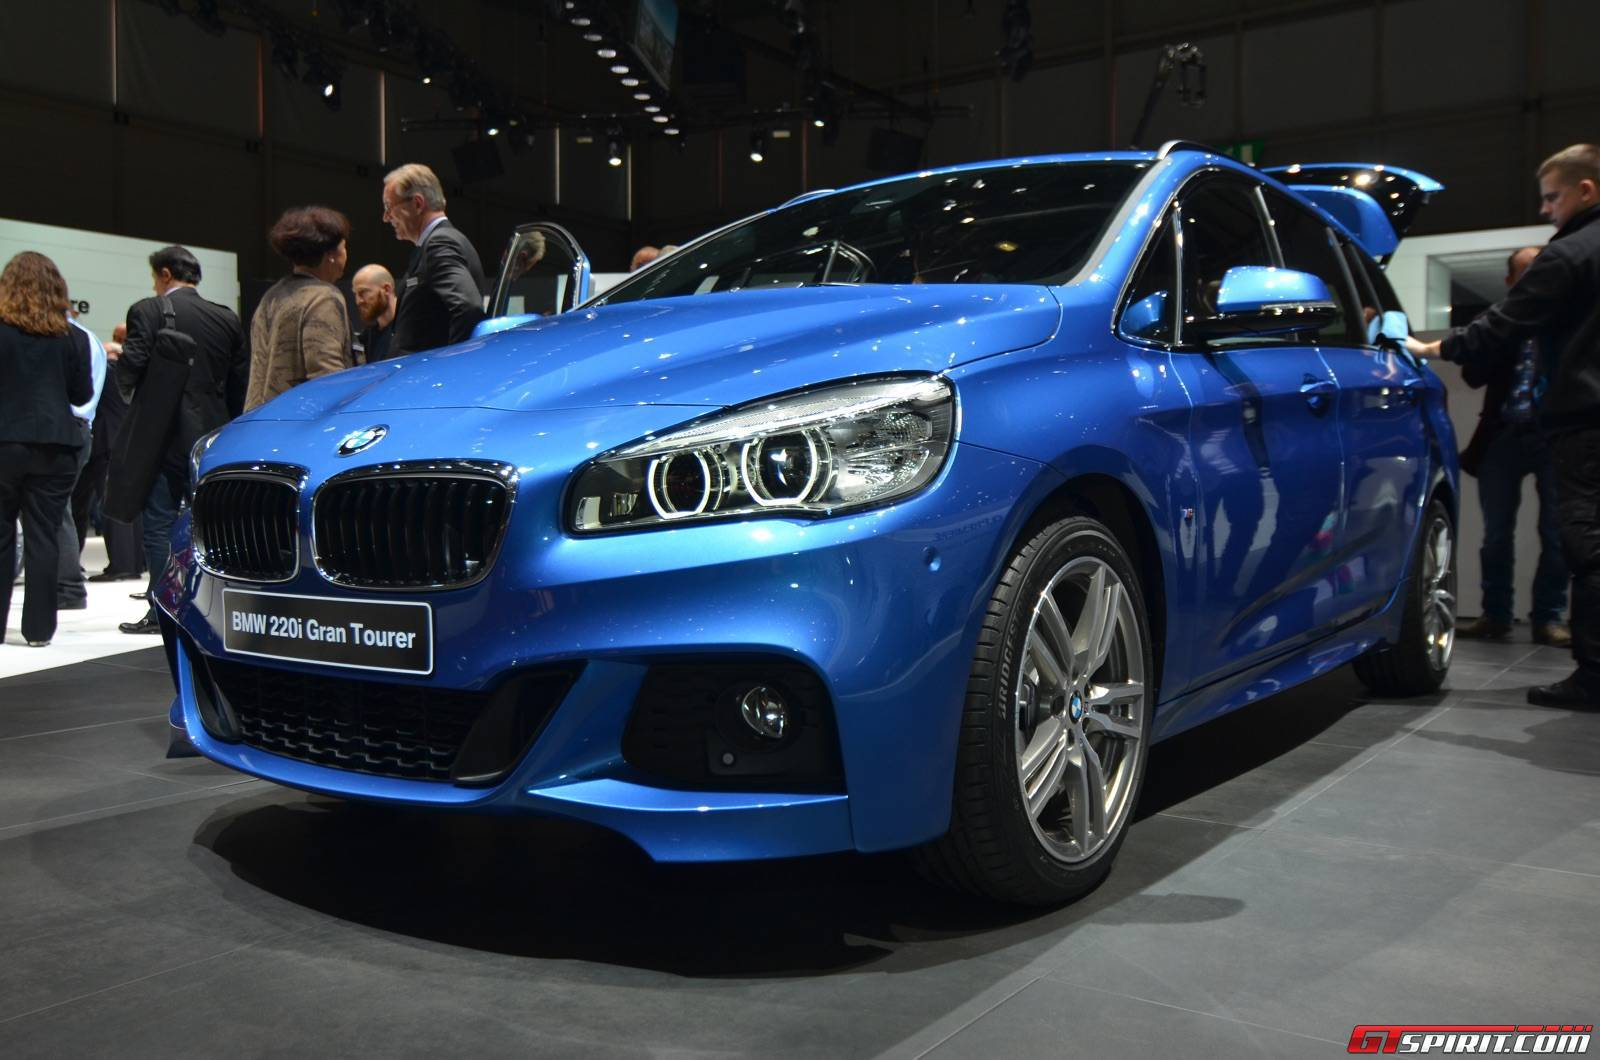 geneva 2015 bmw 2 series grand tourer. Black Bedroom Furniture Sets. Home Design Ideas